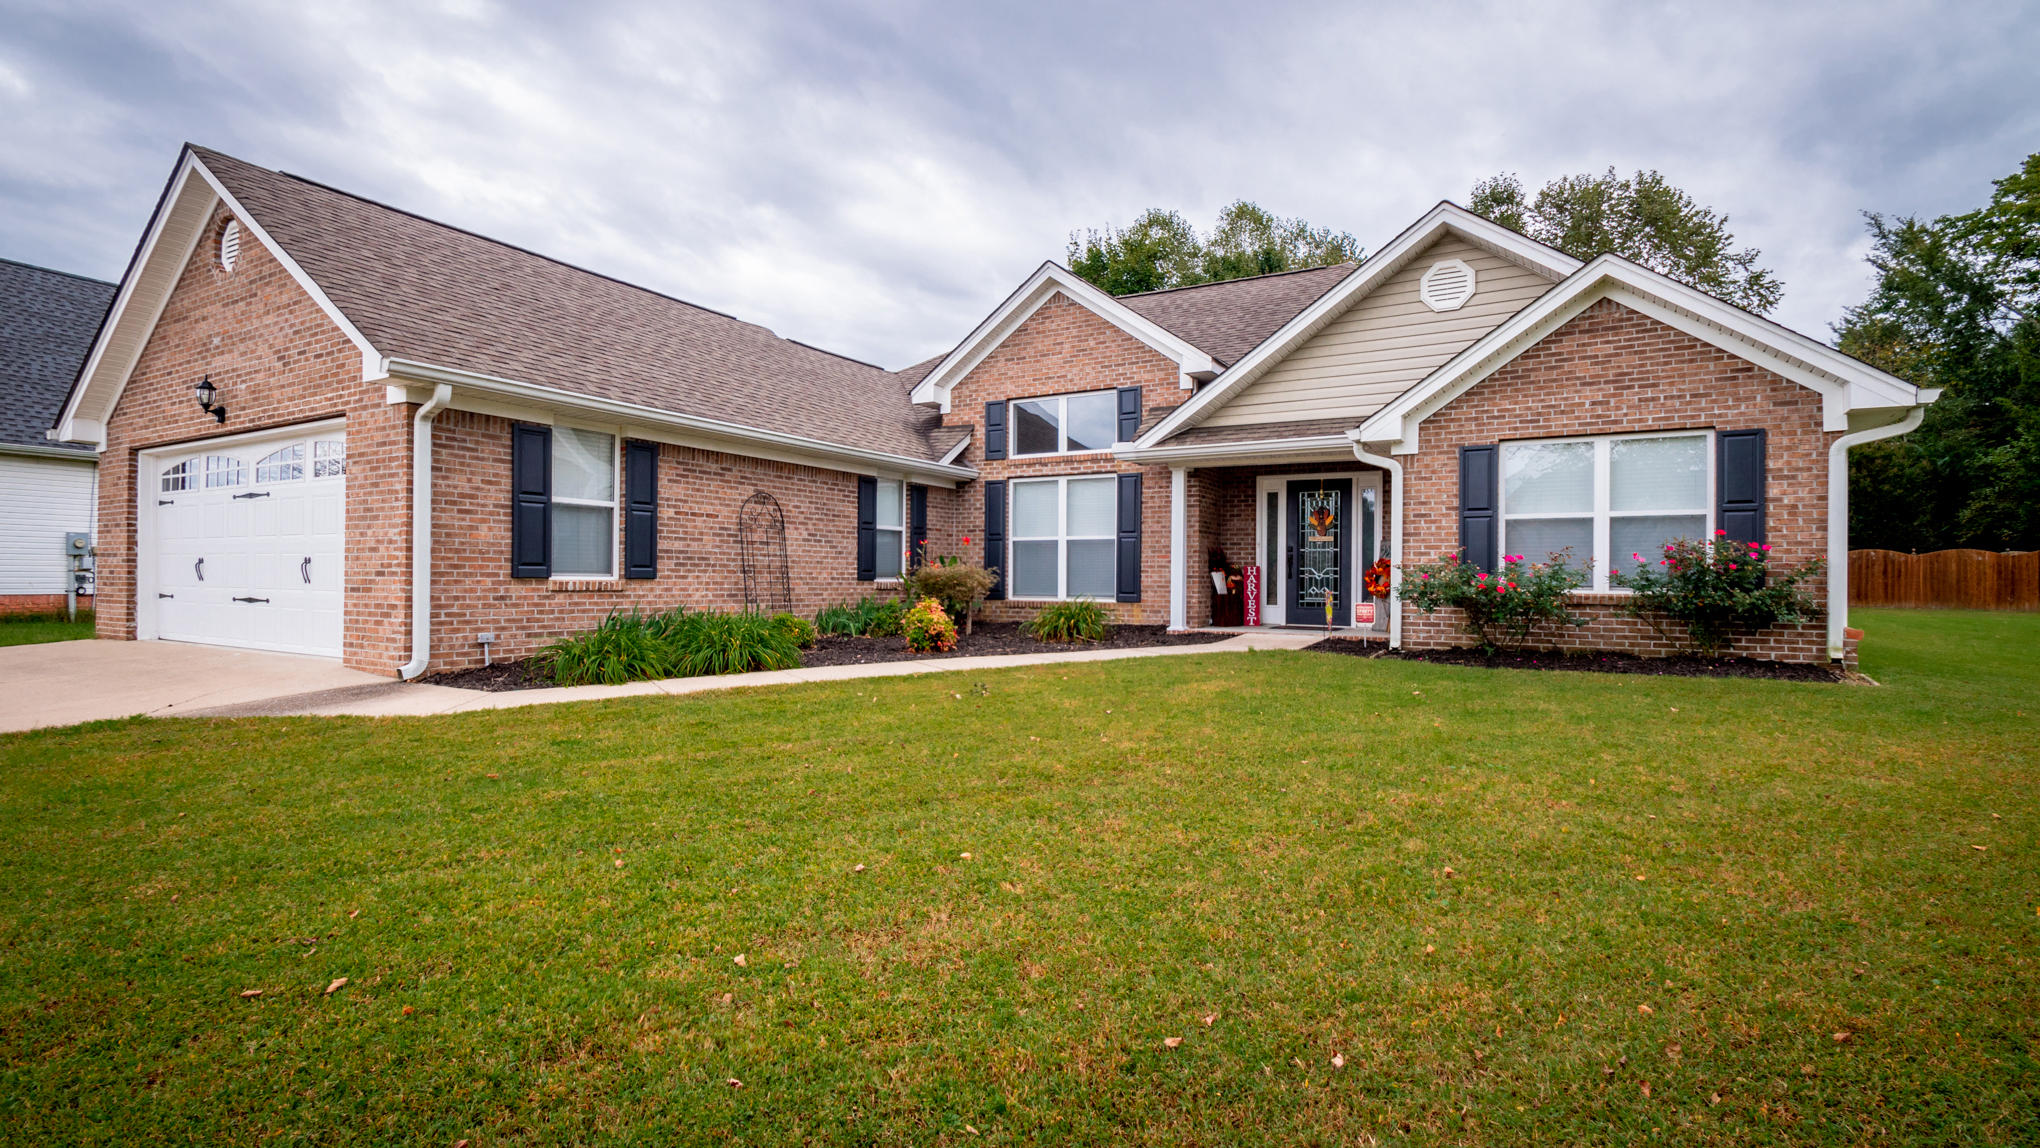 7134 Meredith Ct, Ooltewah, TN 37363